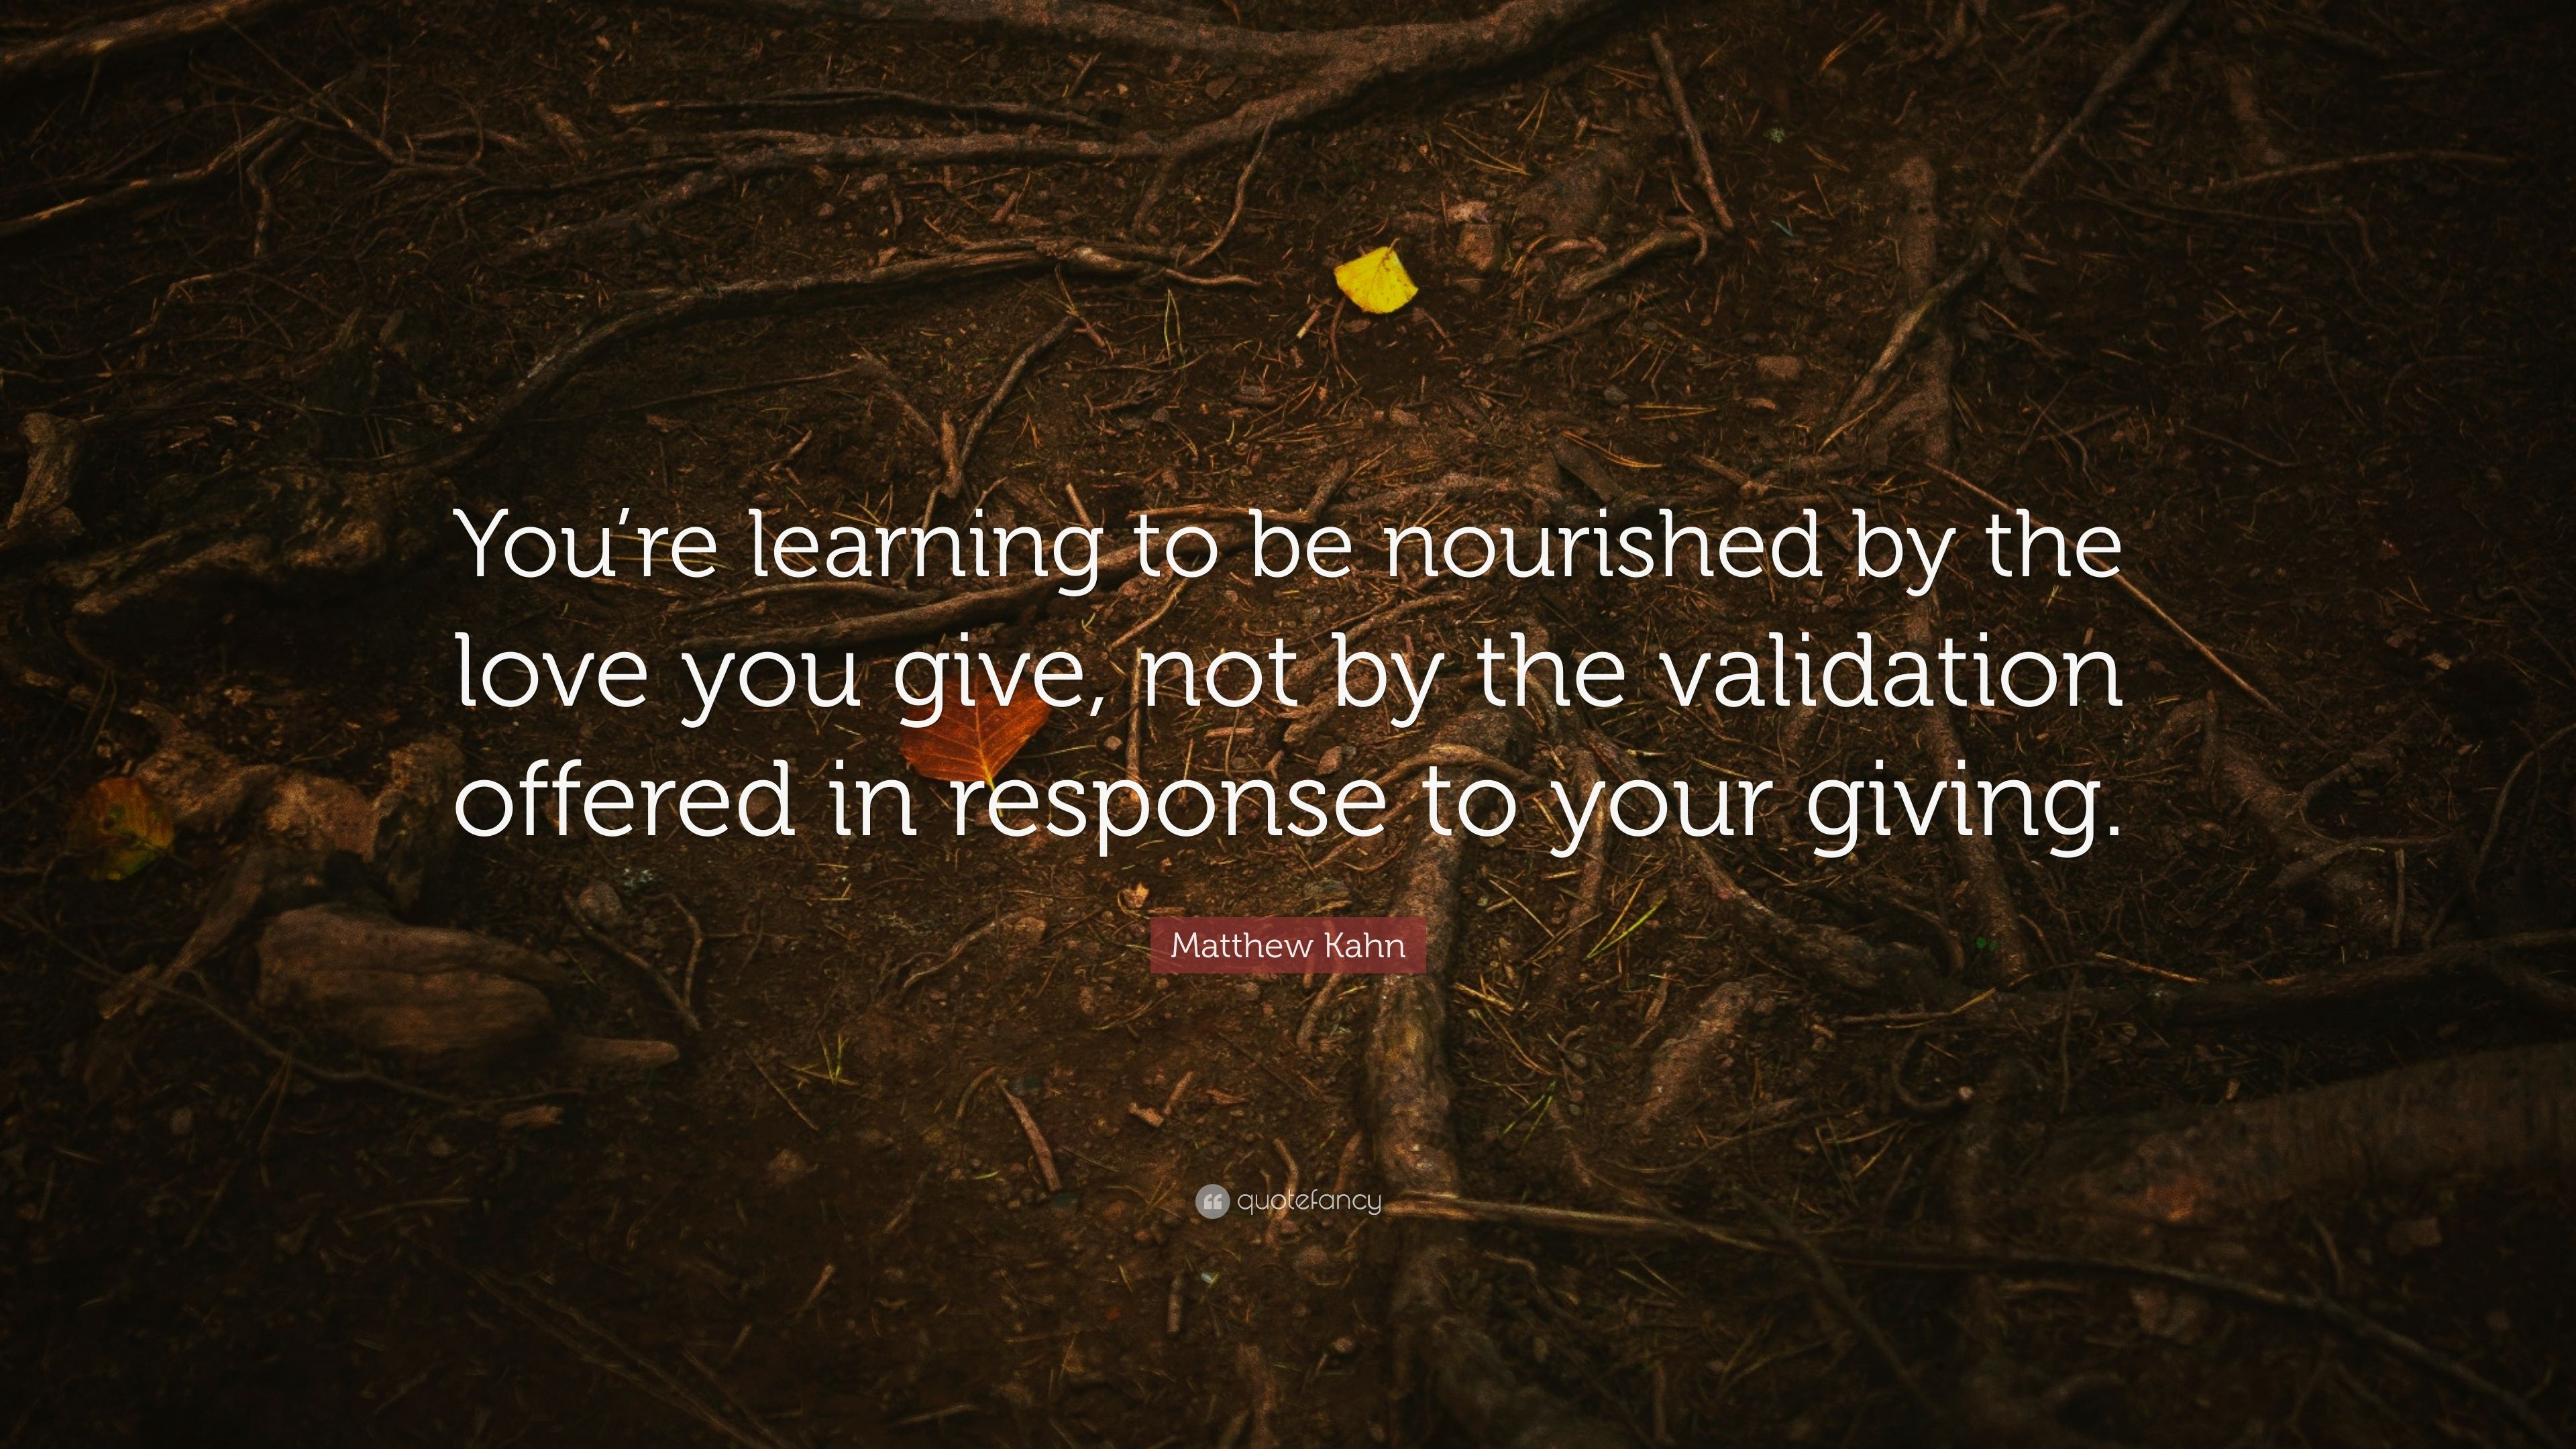 Matt Kahn Quotes | Matthew Kahn Quote You Re Learning To Be Nourished By The Love You